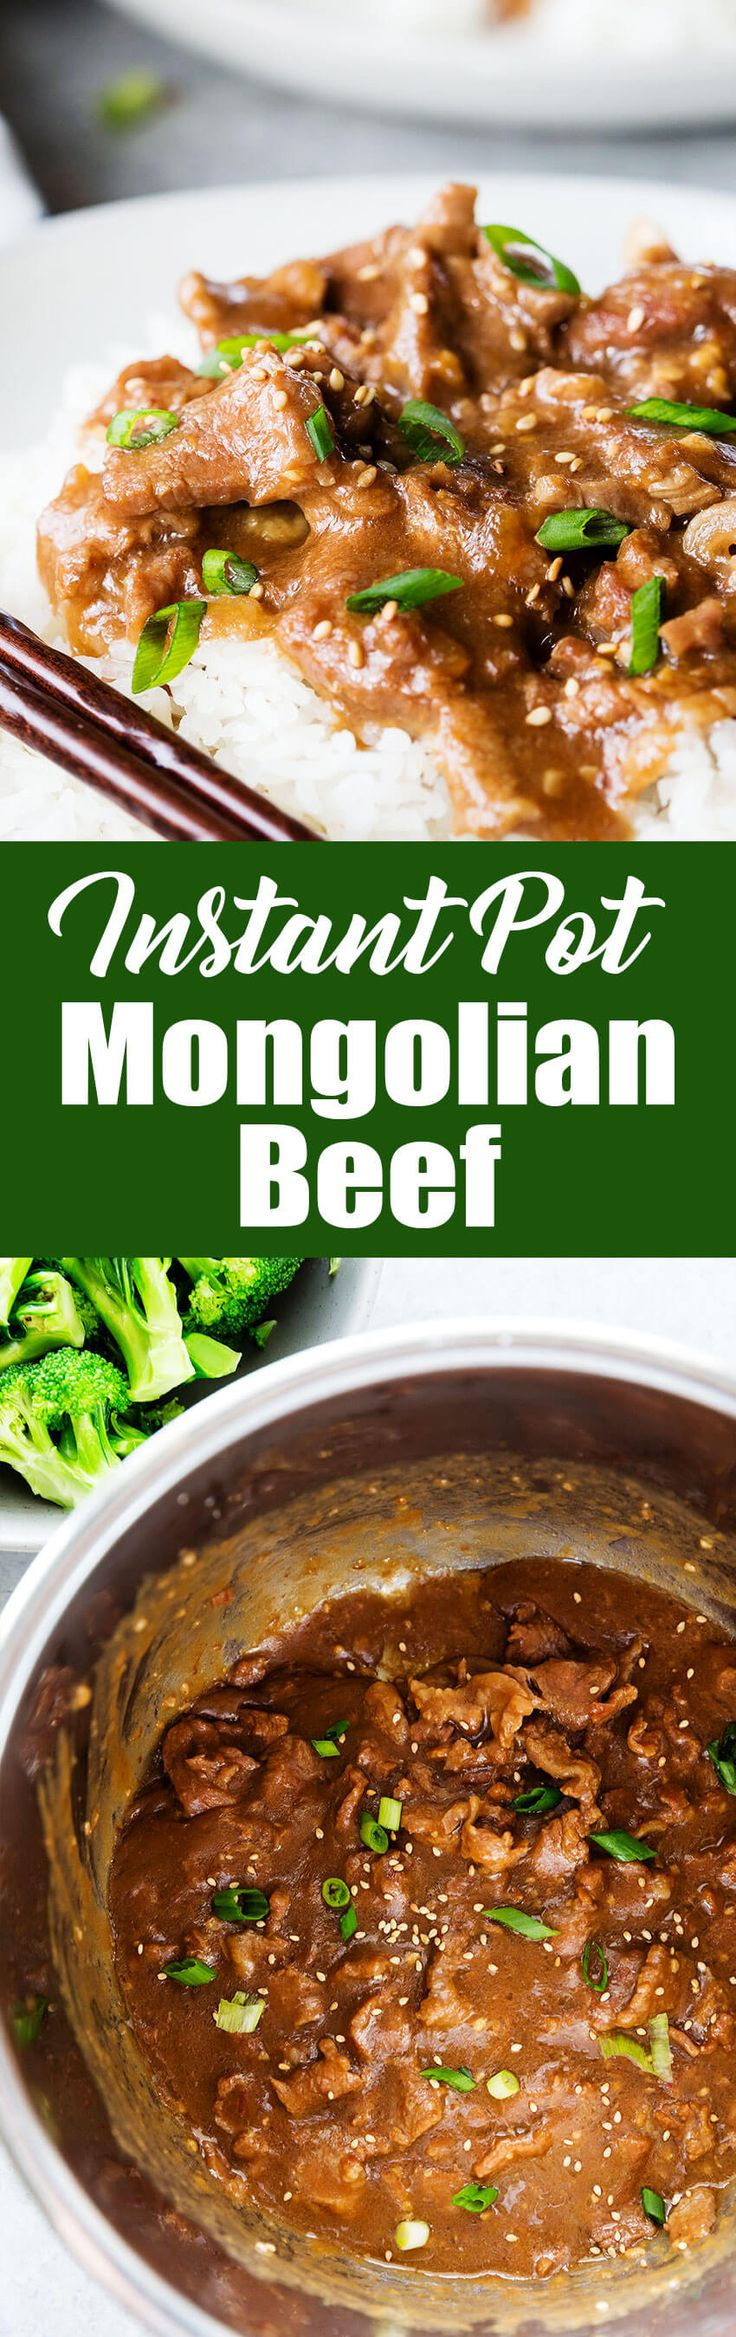 Super easy and delicious Mongolian beef cooked in the instant pot pressure cooker!  #instantpotrecipe #instantpot #beef #mongolianbeef #beefdinner #pressurecooker